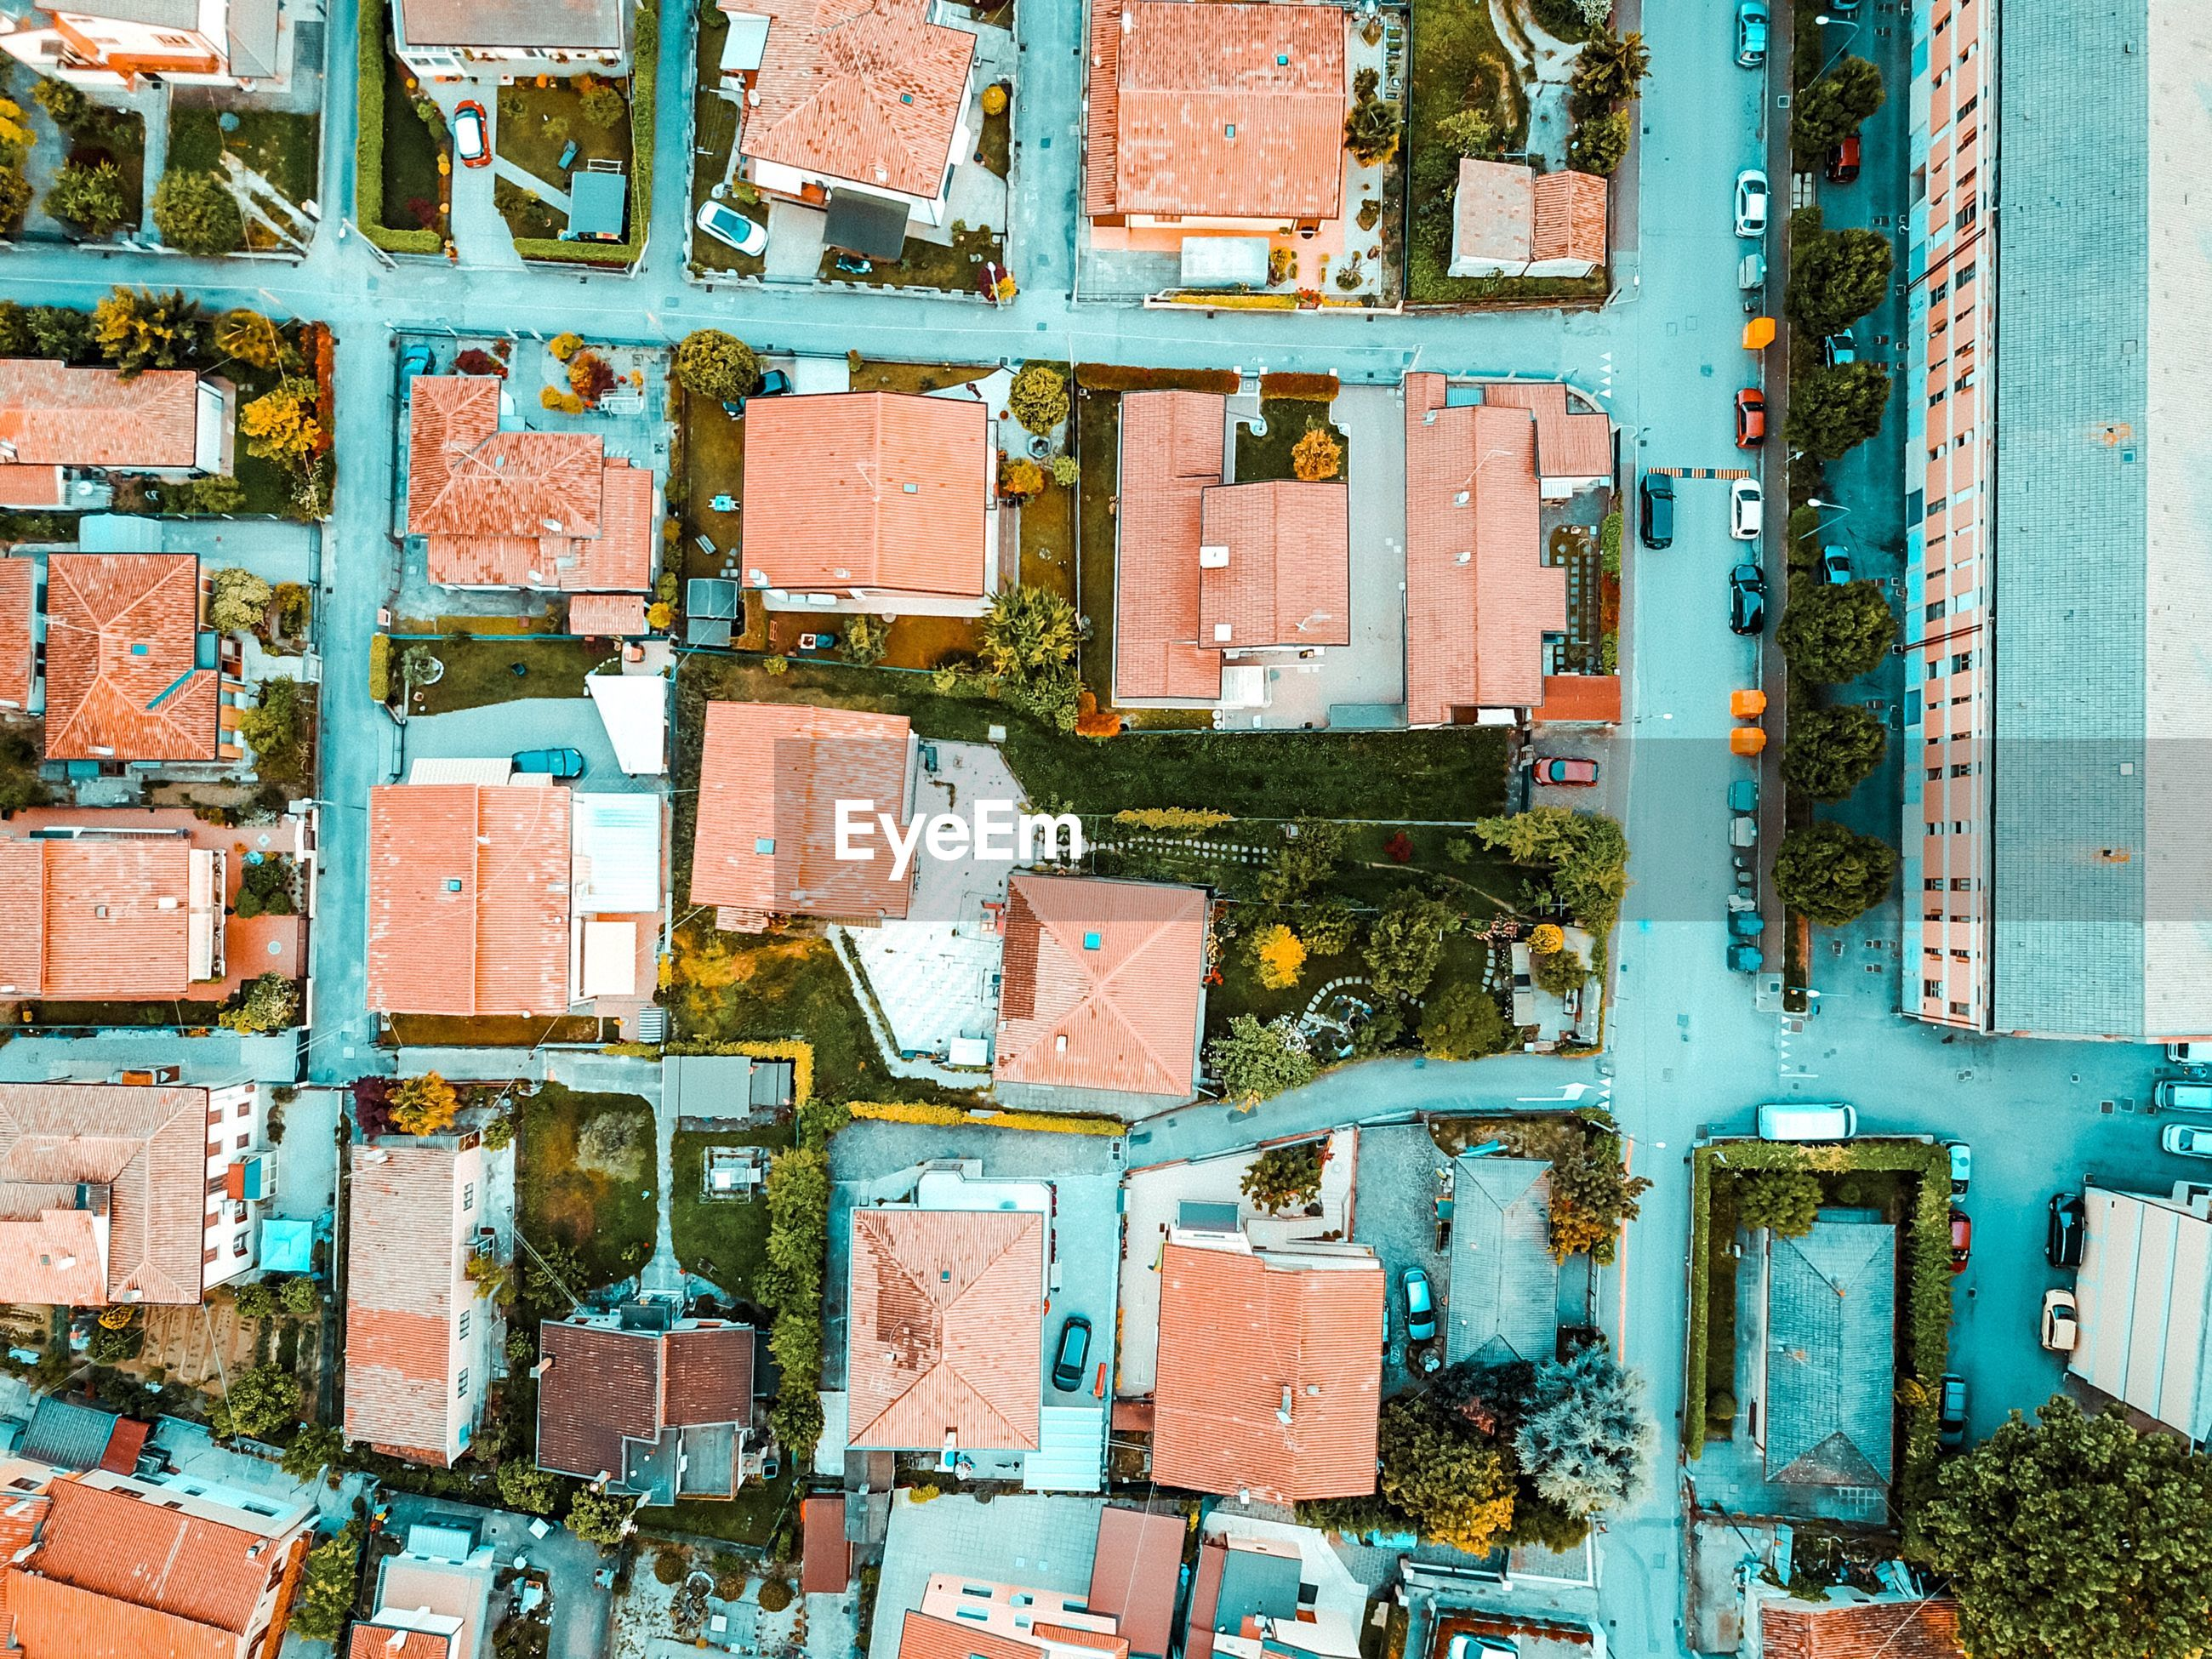 Directly above shot of houses in city